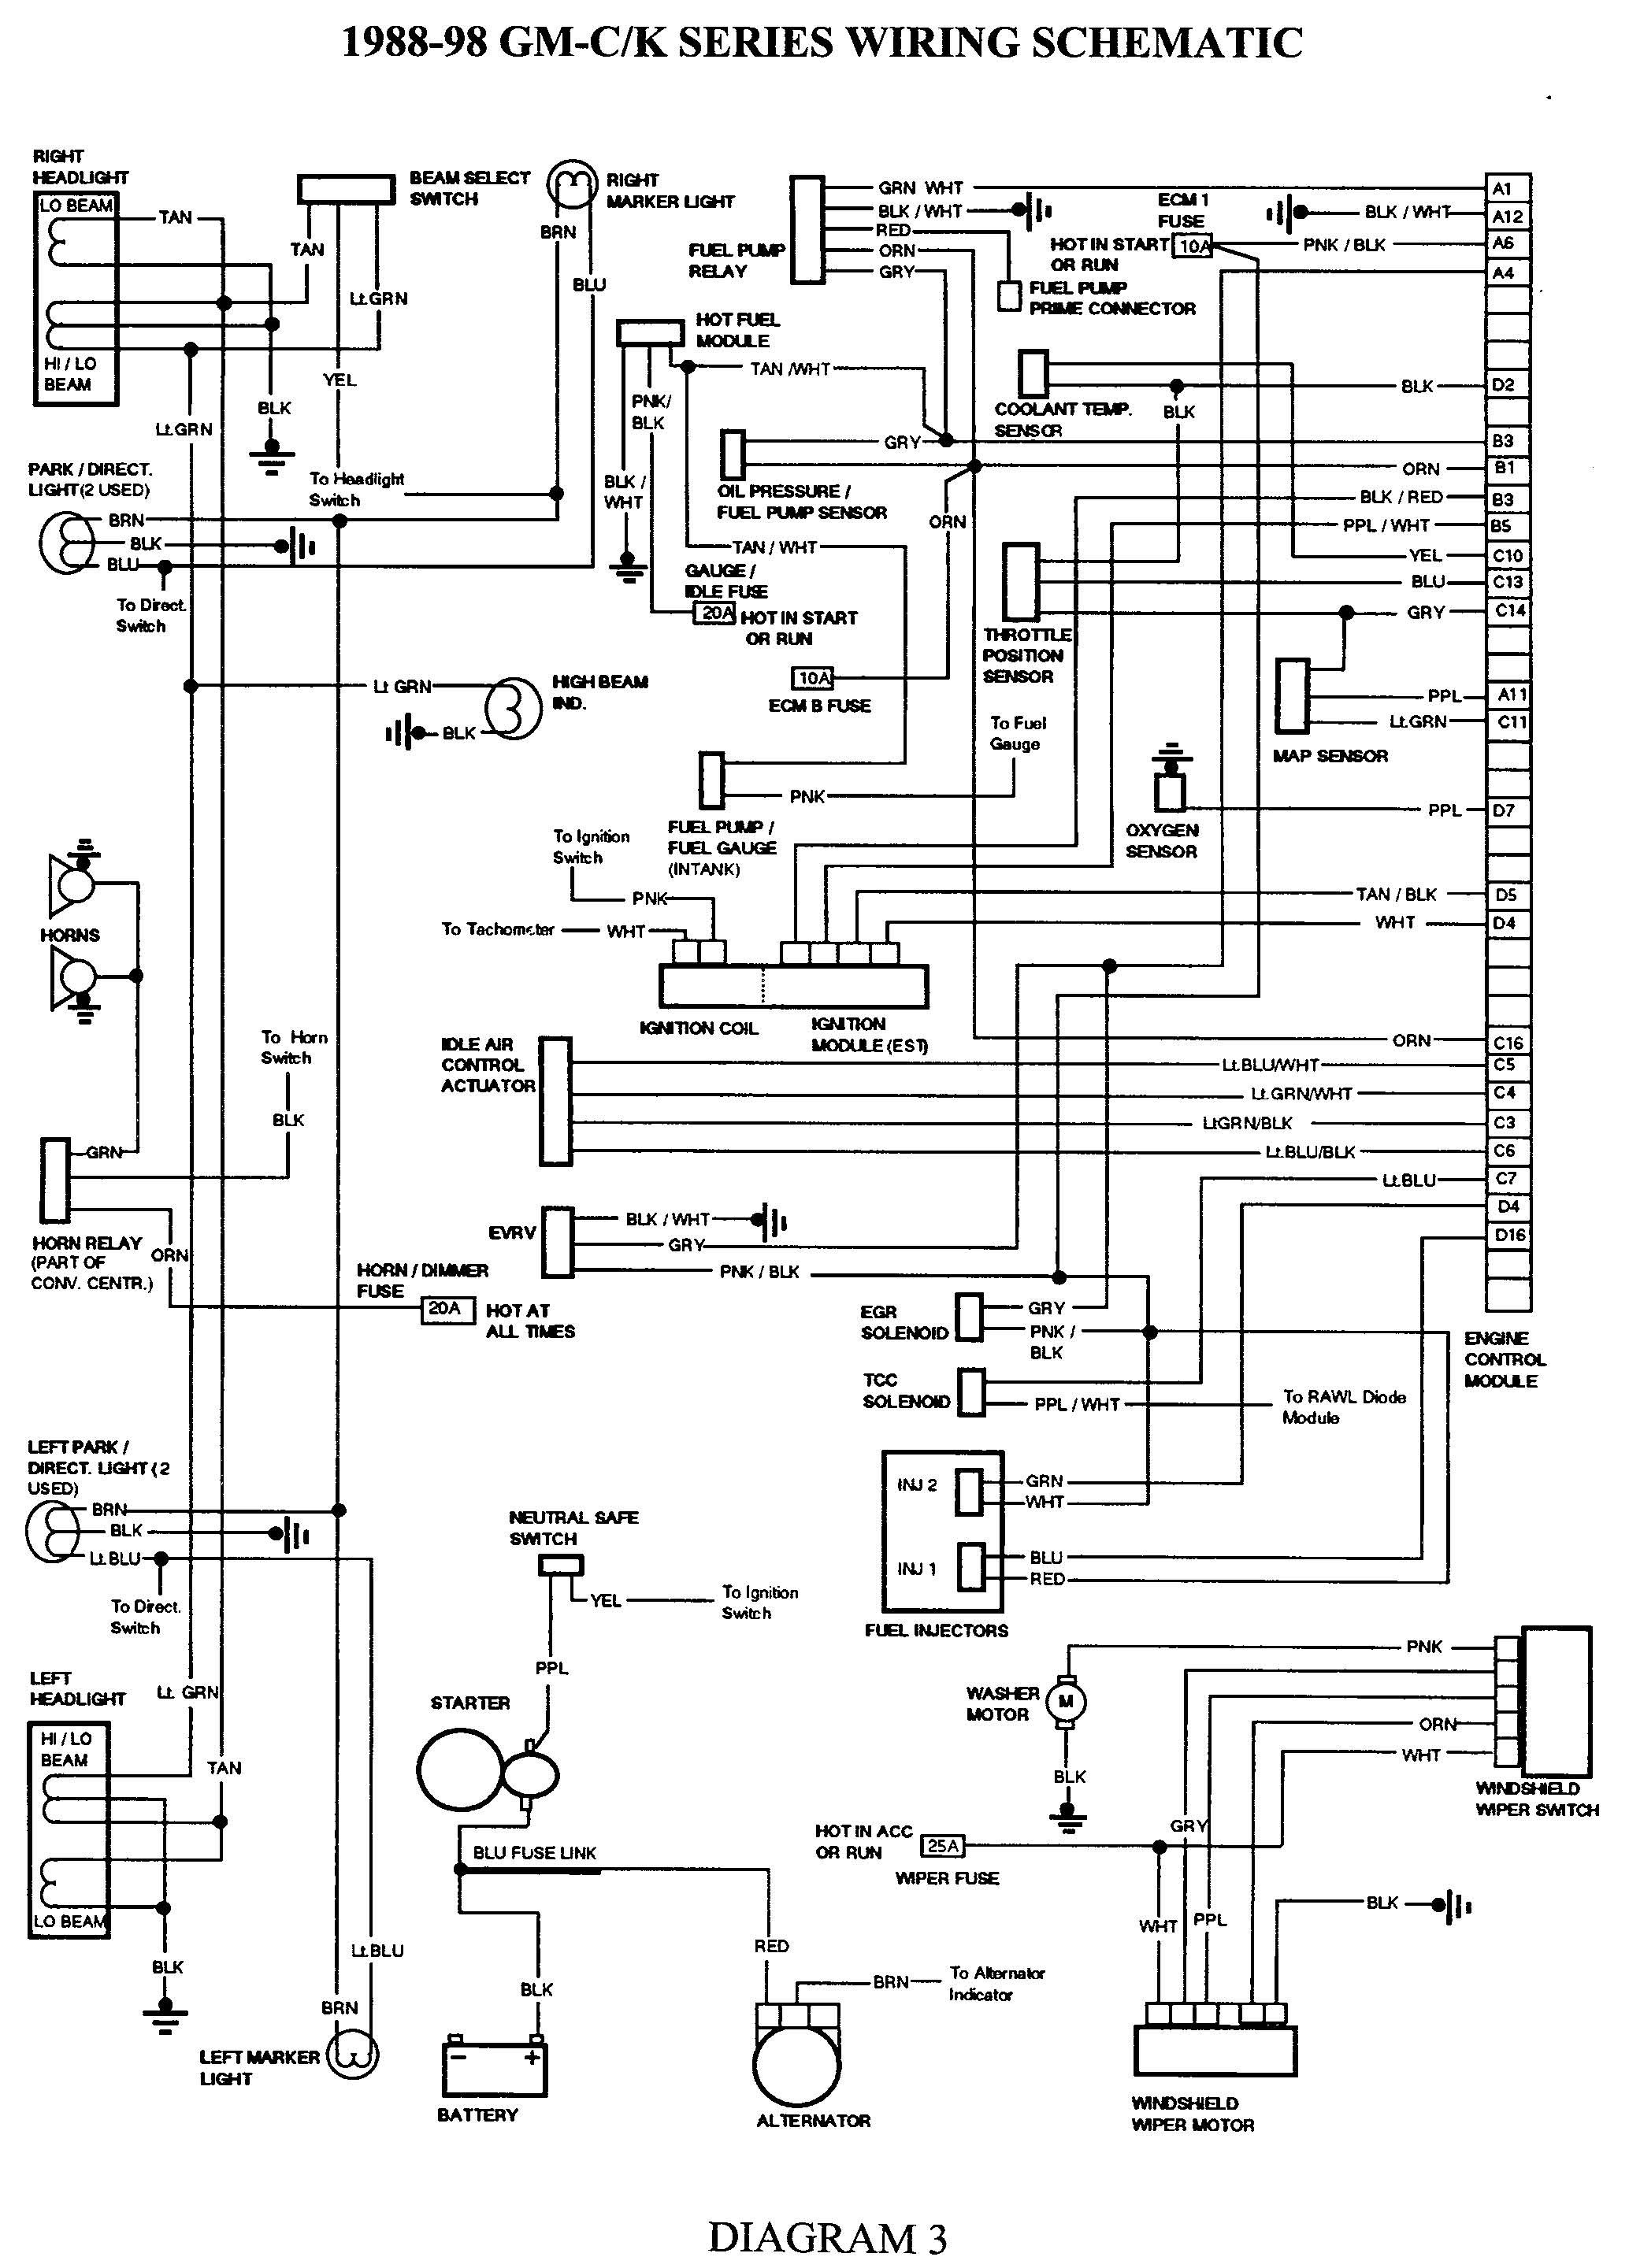 1977 Chrysler Cordoba Wiring Diagram Content Resource Of 1974 Dodge Ramcharger New Yorker Data Schema U2022 Rh Serasa Co 1976